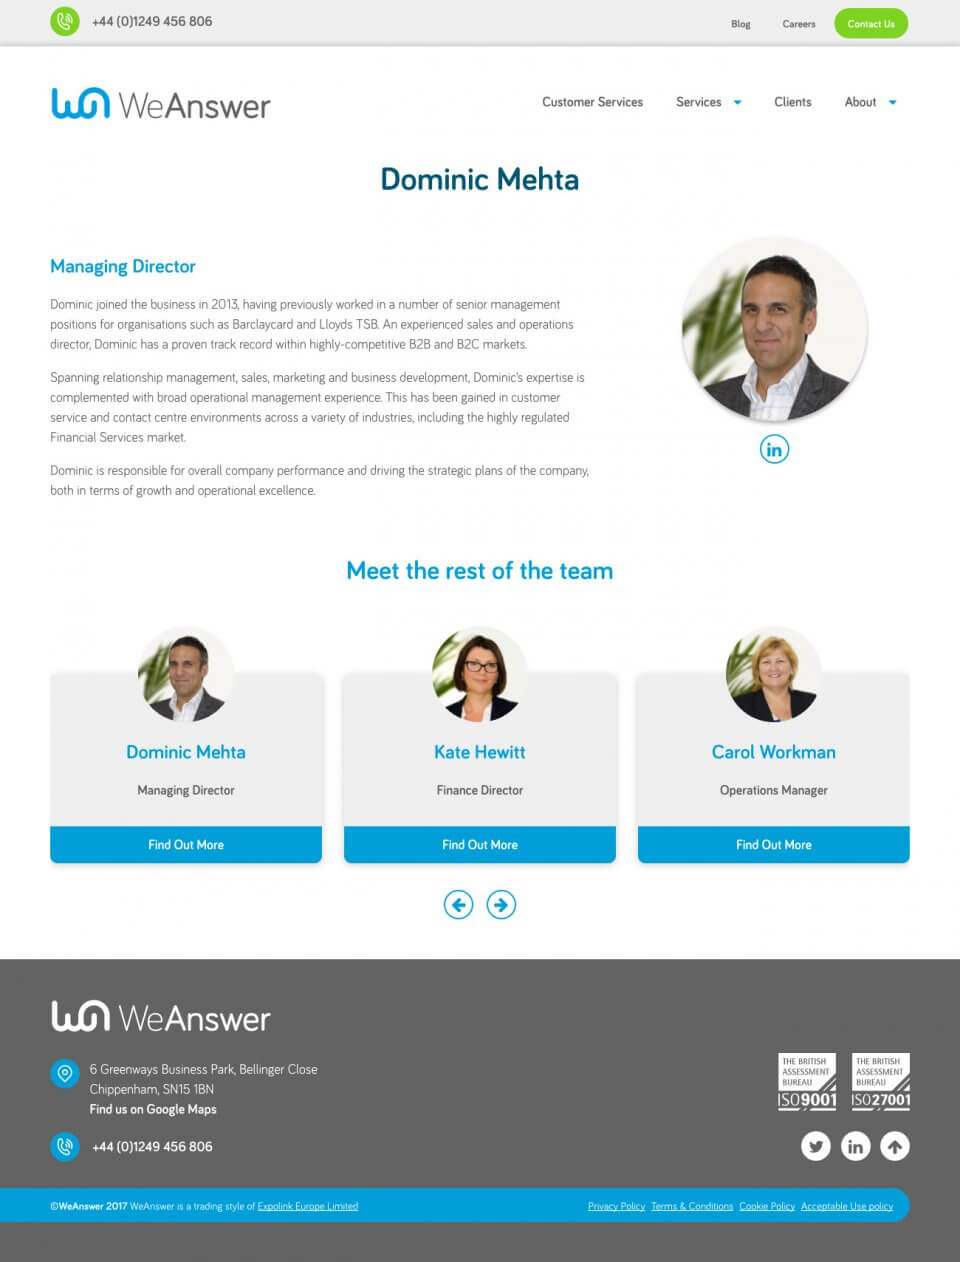 WeAnswer - Team Member Page